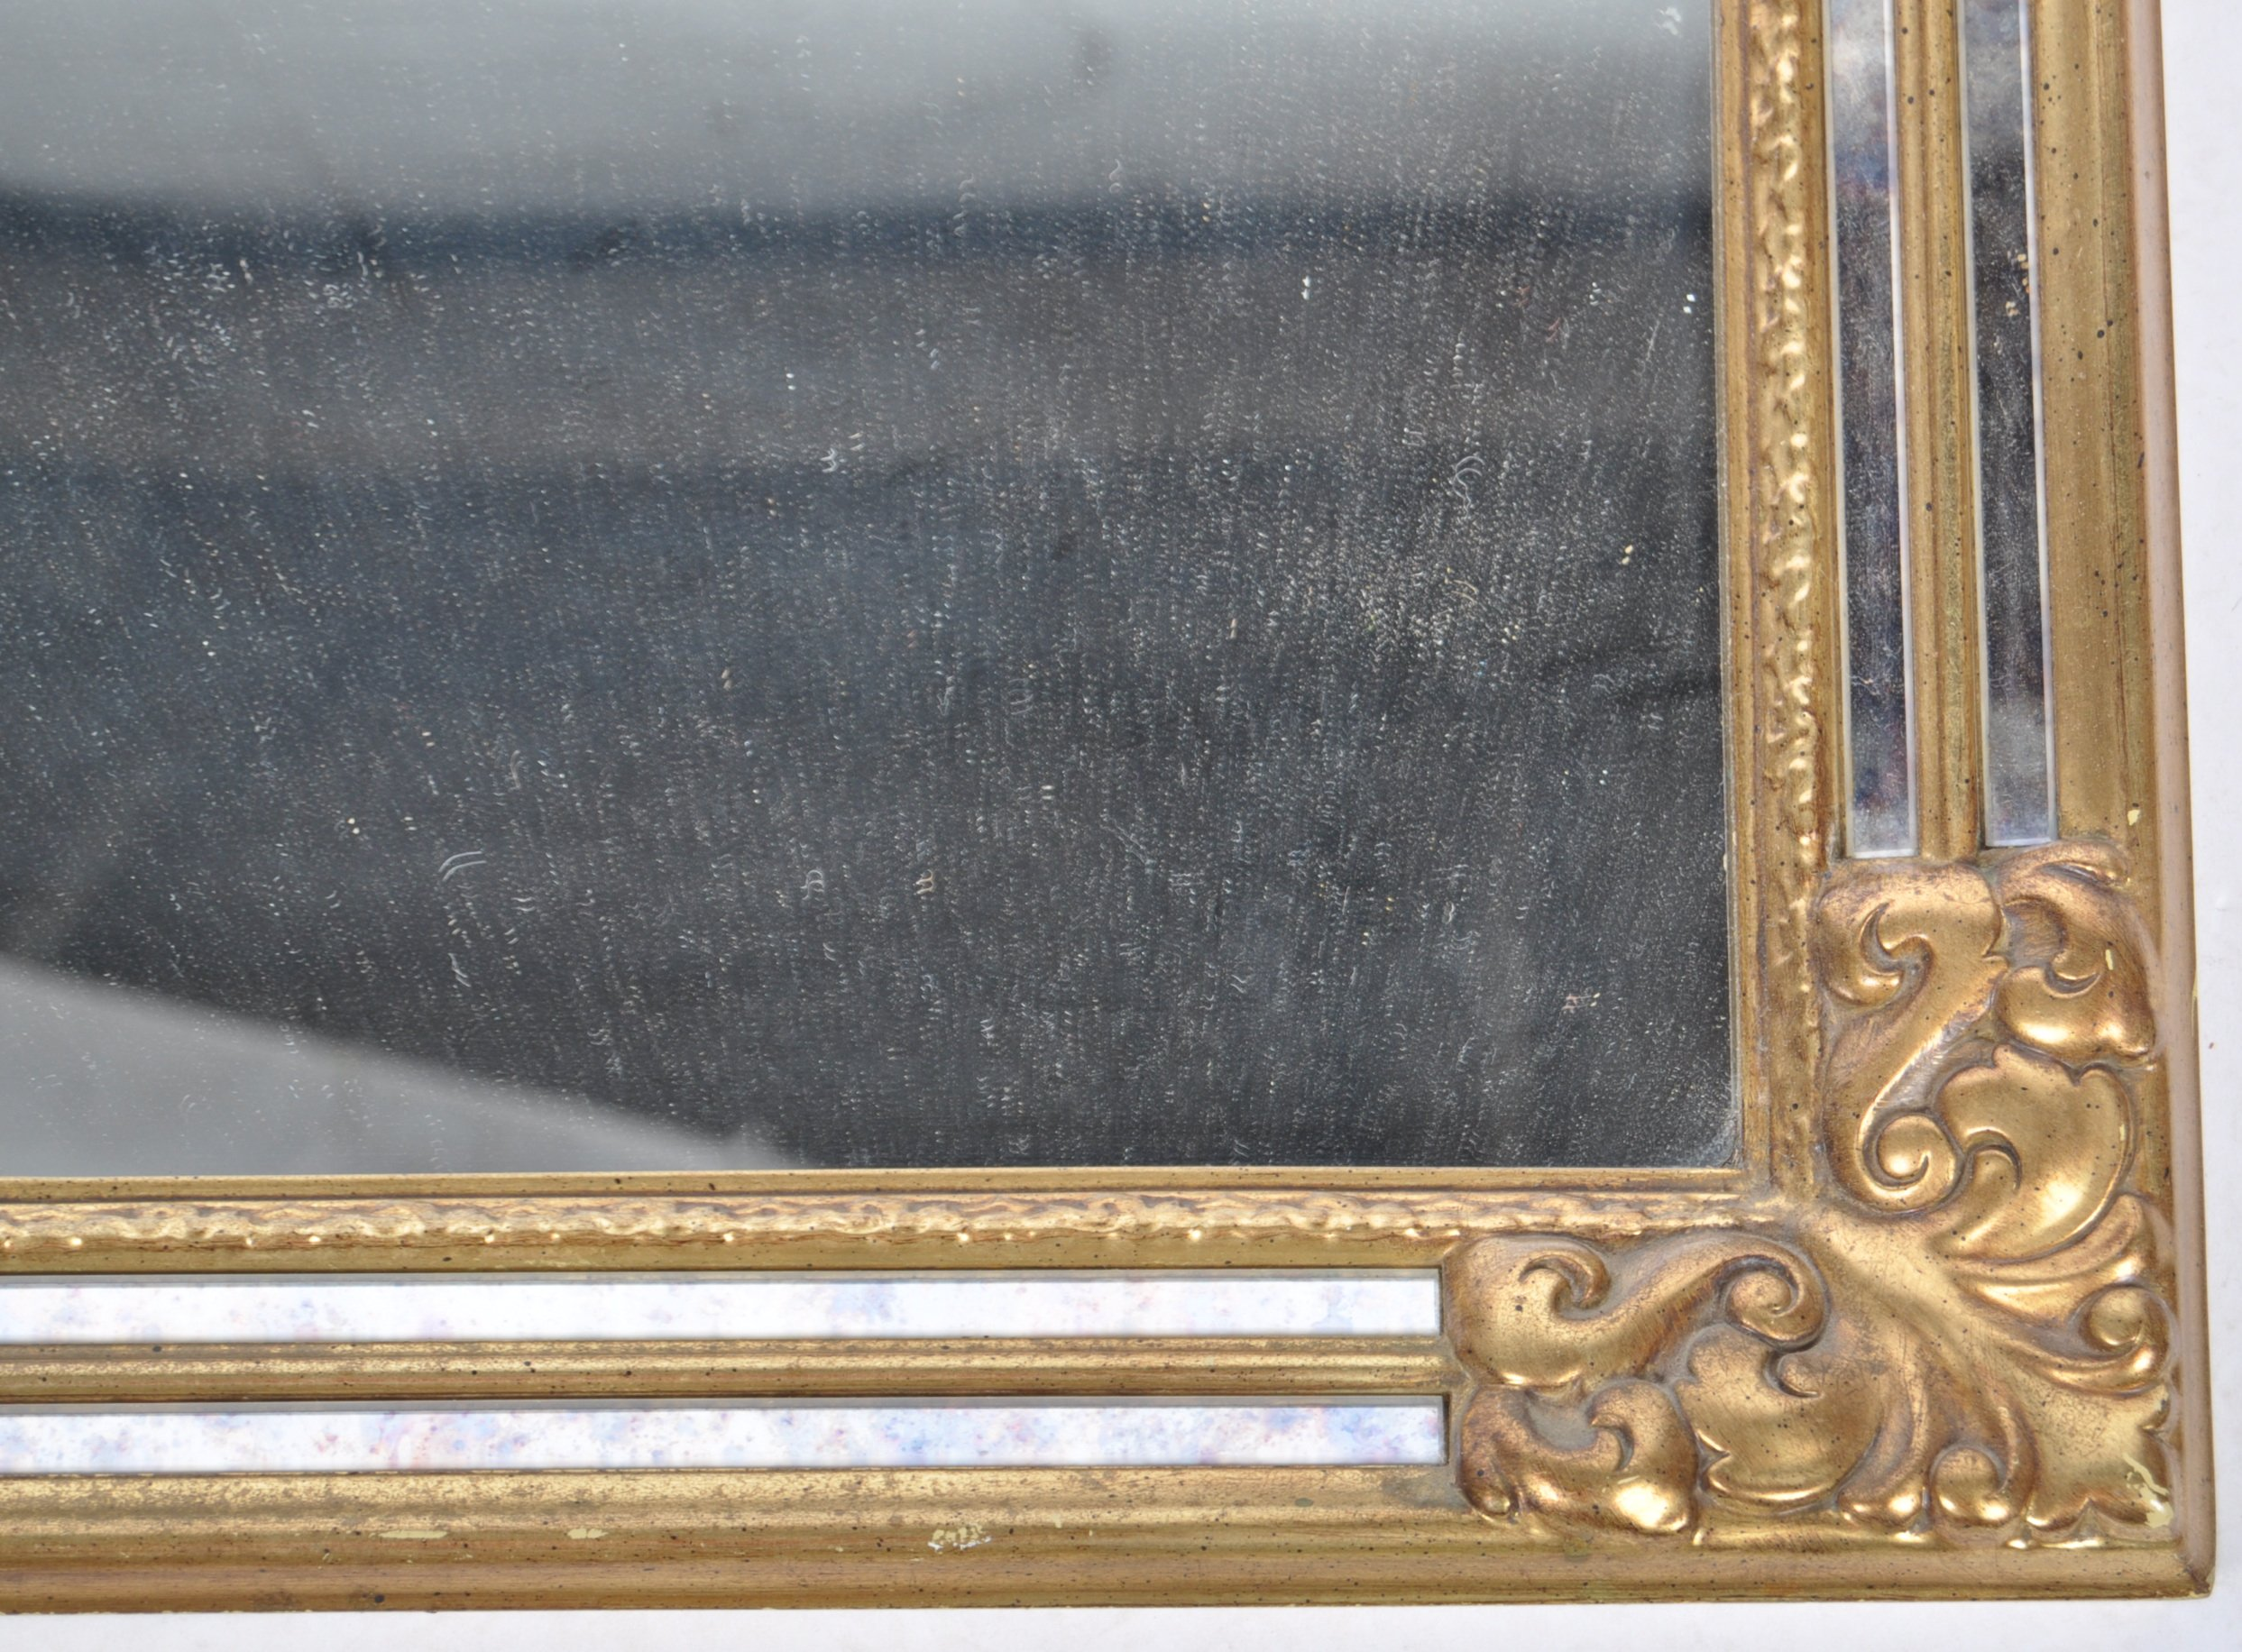 CONTEMPORARY ANTIQUE STYLE GILT FRAMED WALL HANGING MIRROR - Image 5 of 6